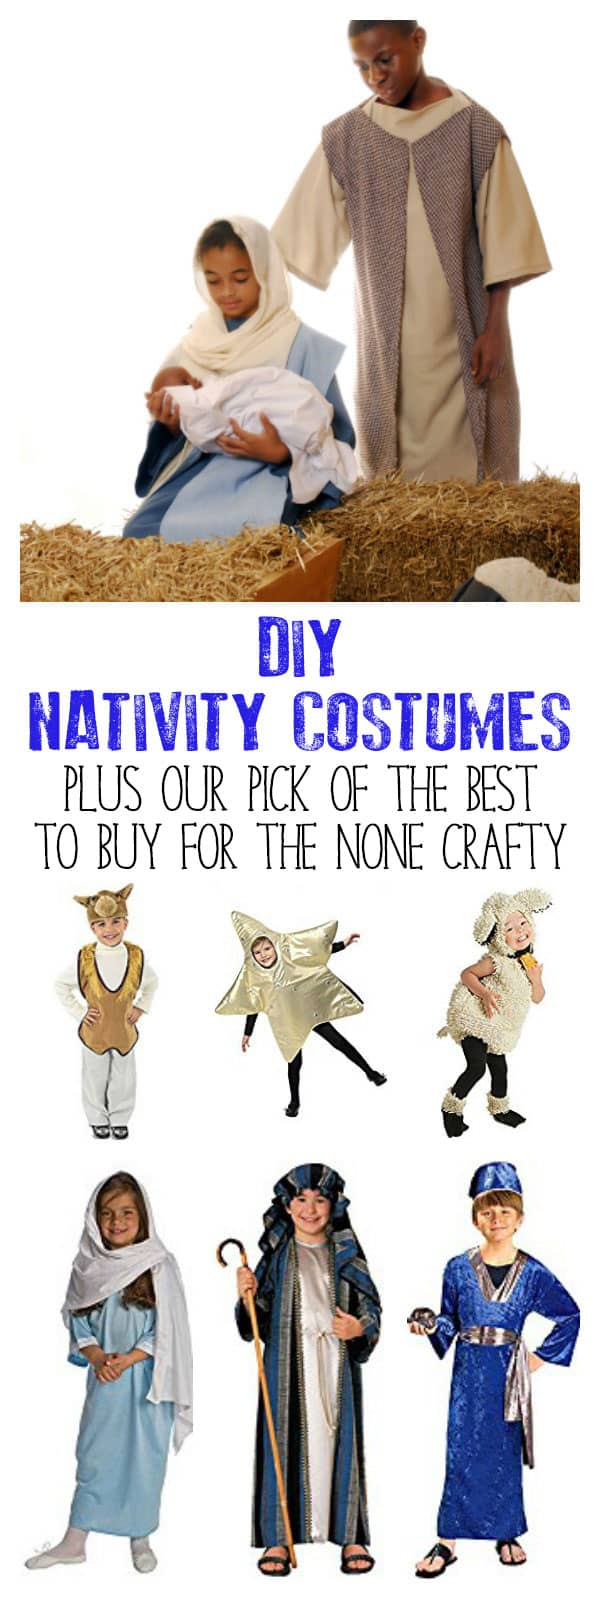 The best nativity costumes to make or buy for this years nativity show best nativity costumes to diy or buy for children with ideas for all the characters solutioingenieria